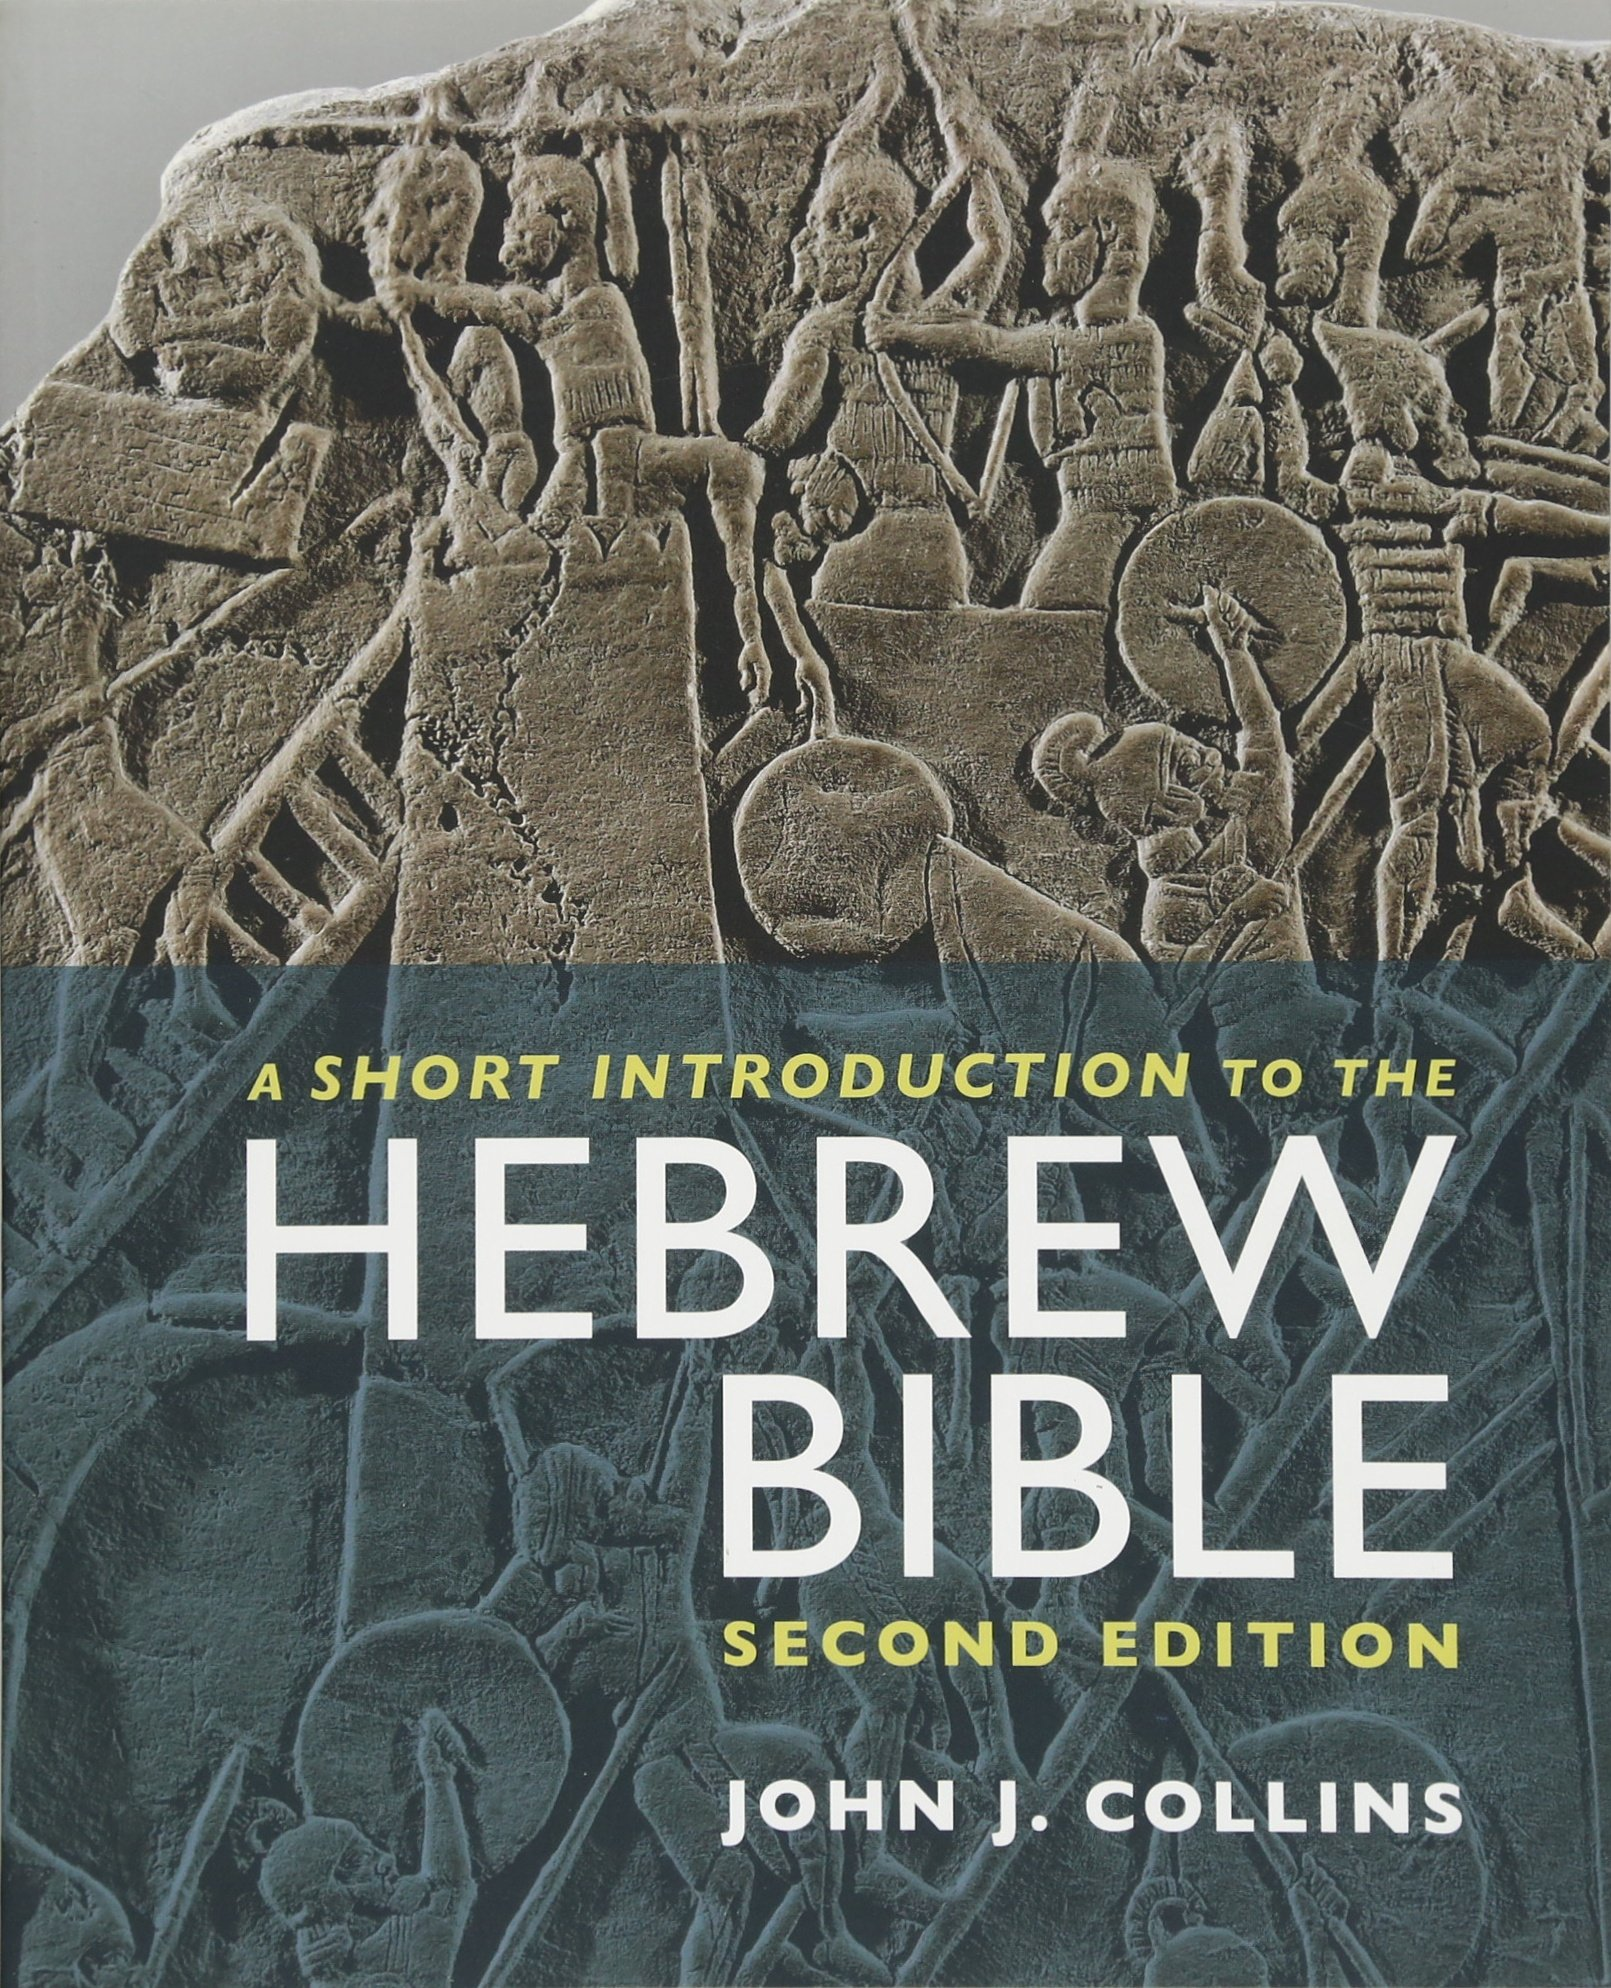 A Short Introduction to the Hebrew Bible: Second Edition by Fortress Press